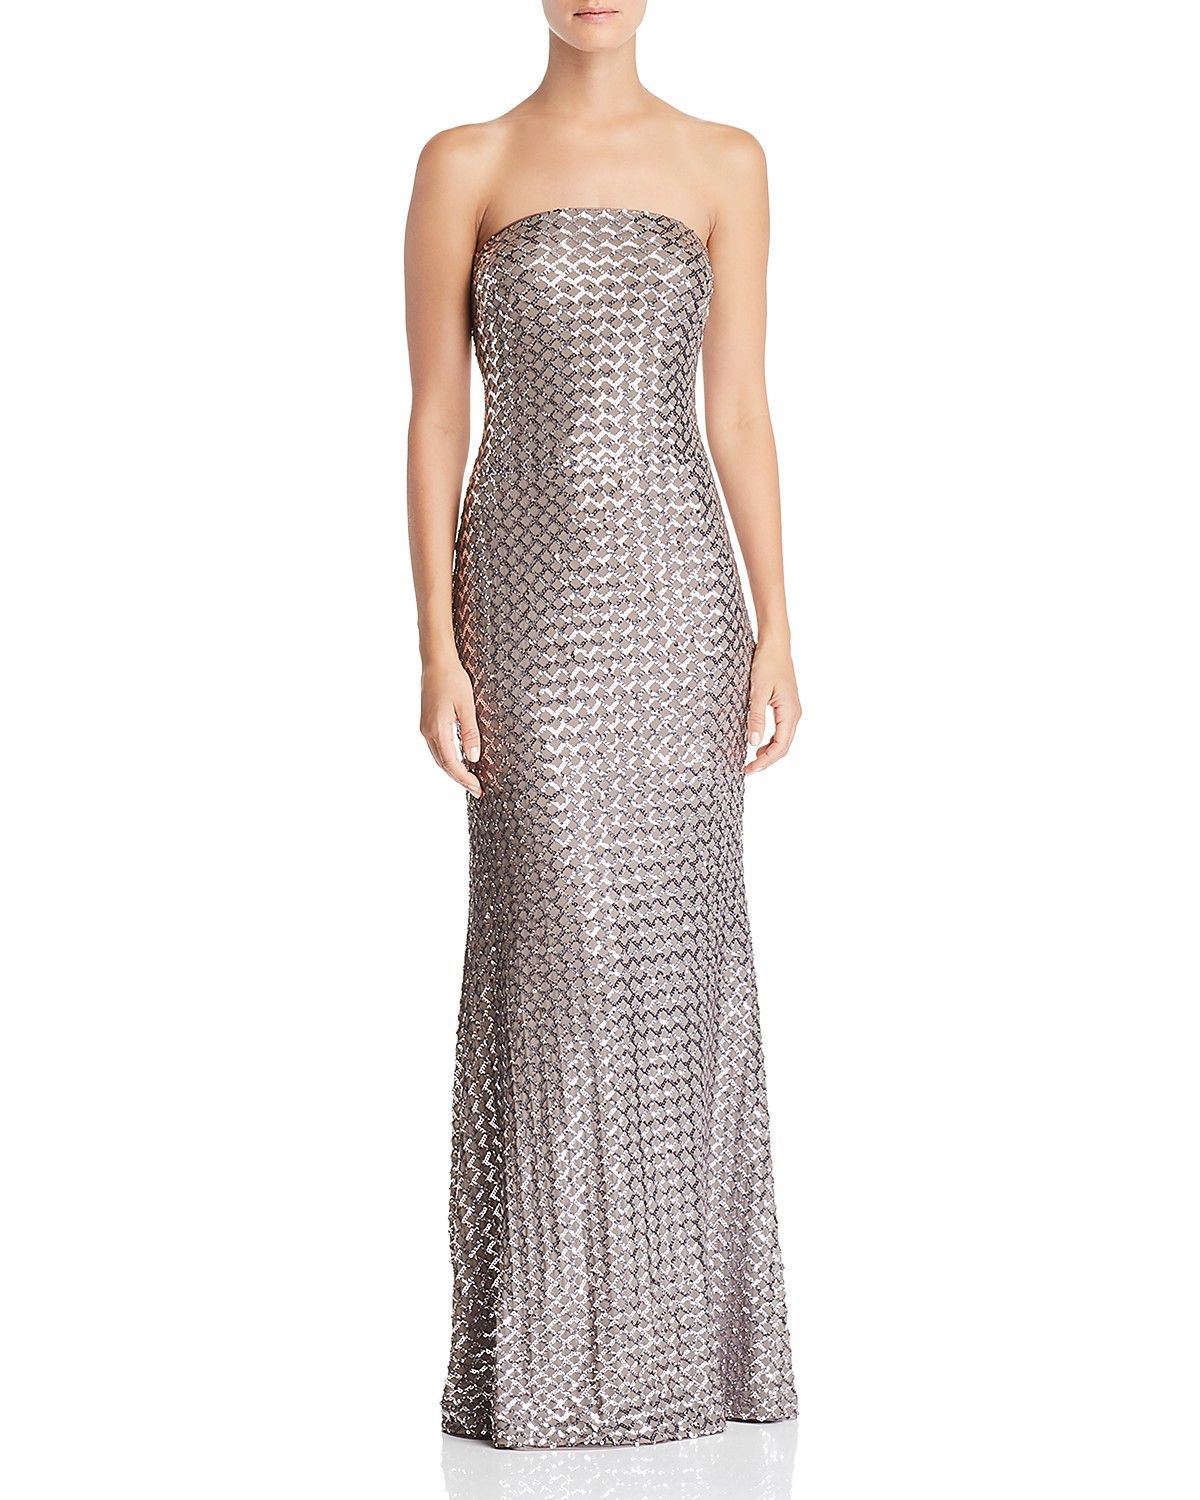 dae339c709a57 Taupe Silver Strapless Sequin Gown | AQUA #taupe #silver #dresses #gowns  #fashion